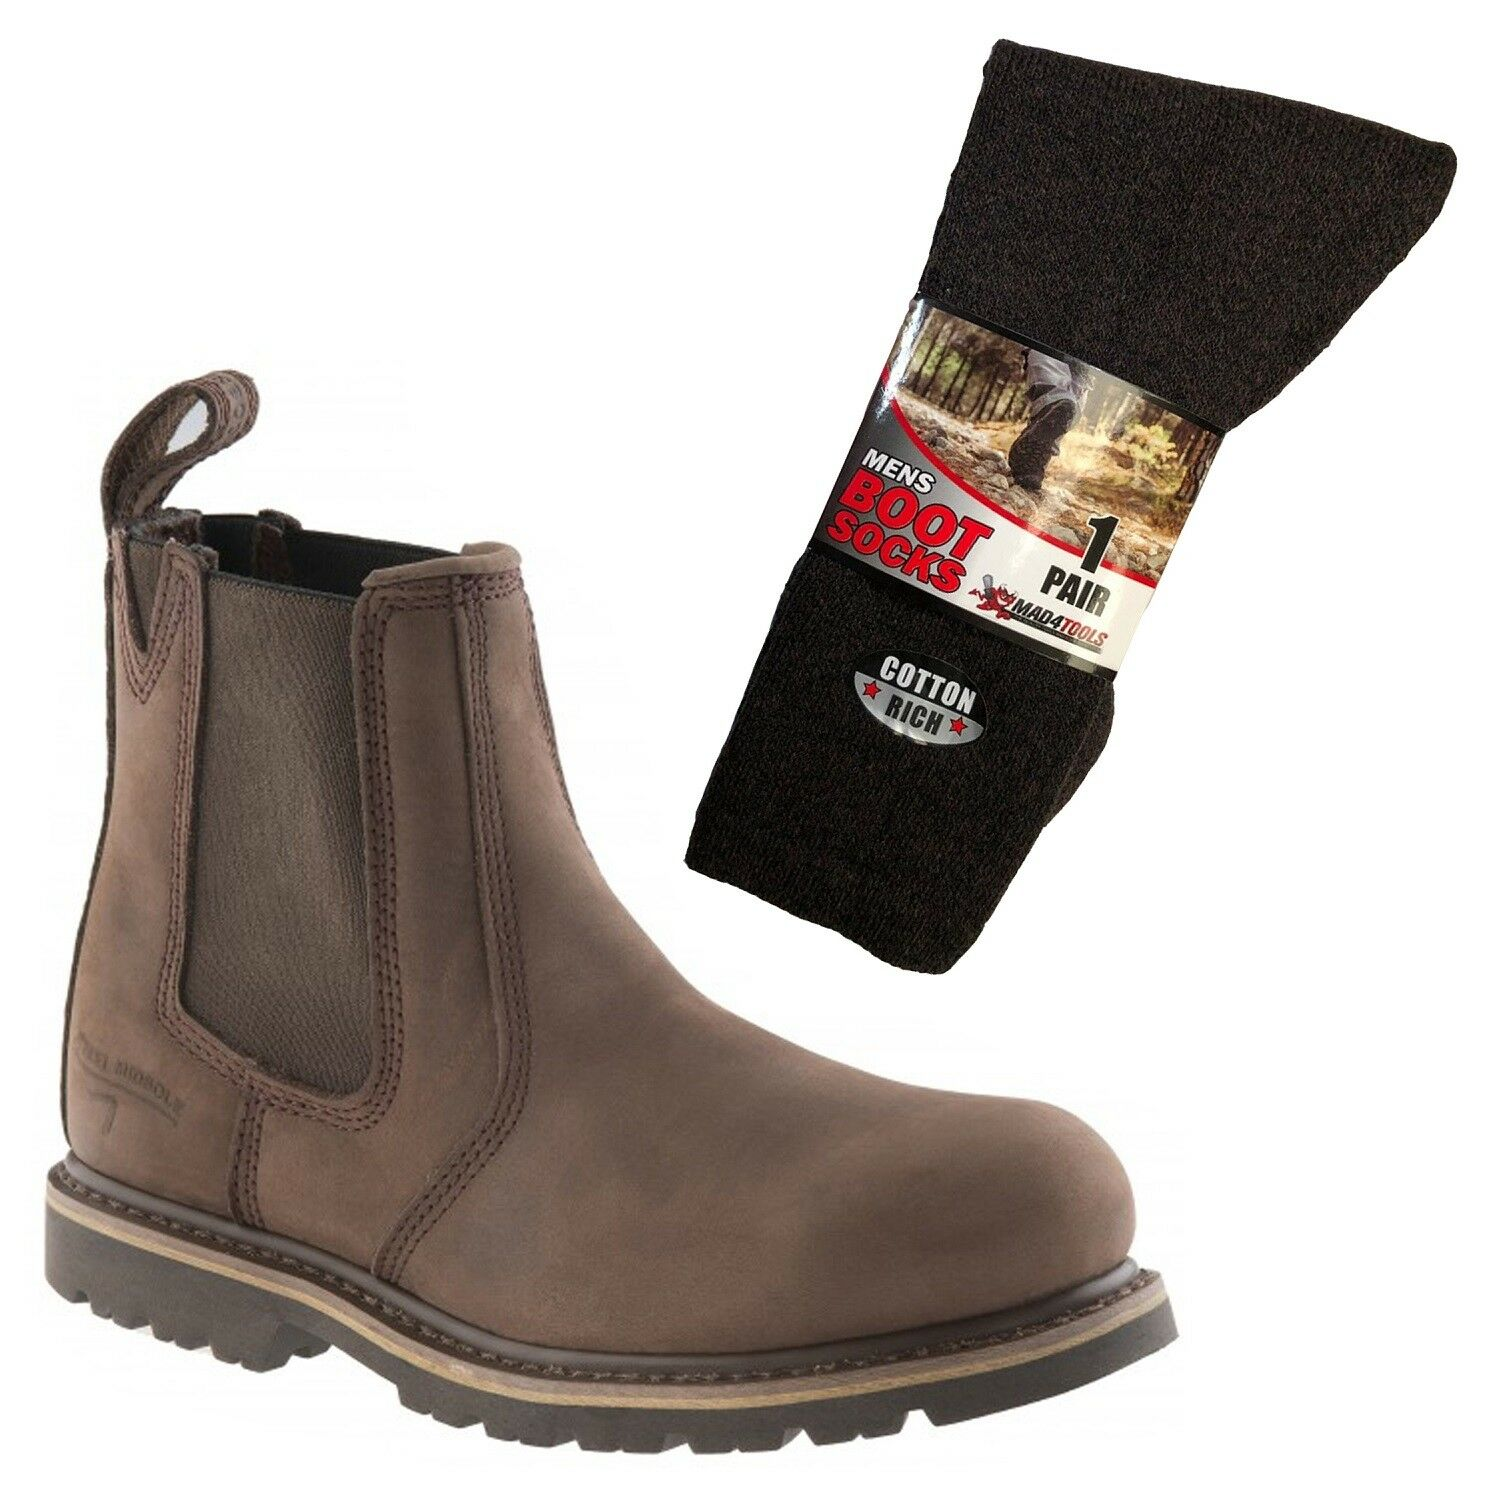 Buckler B1150SM Safety Dealer Boots Brown (Sizes 4-13) & 1 Pair of Socks